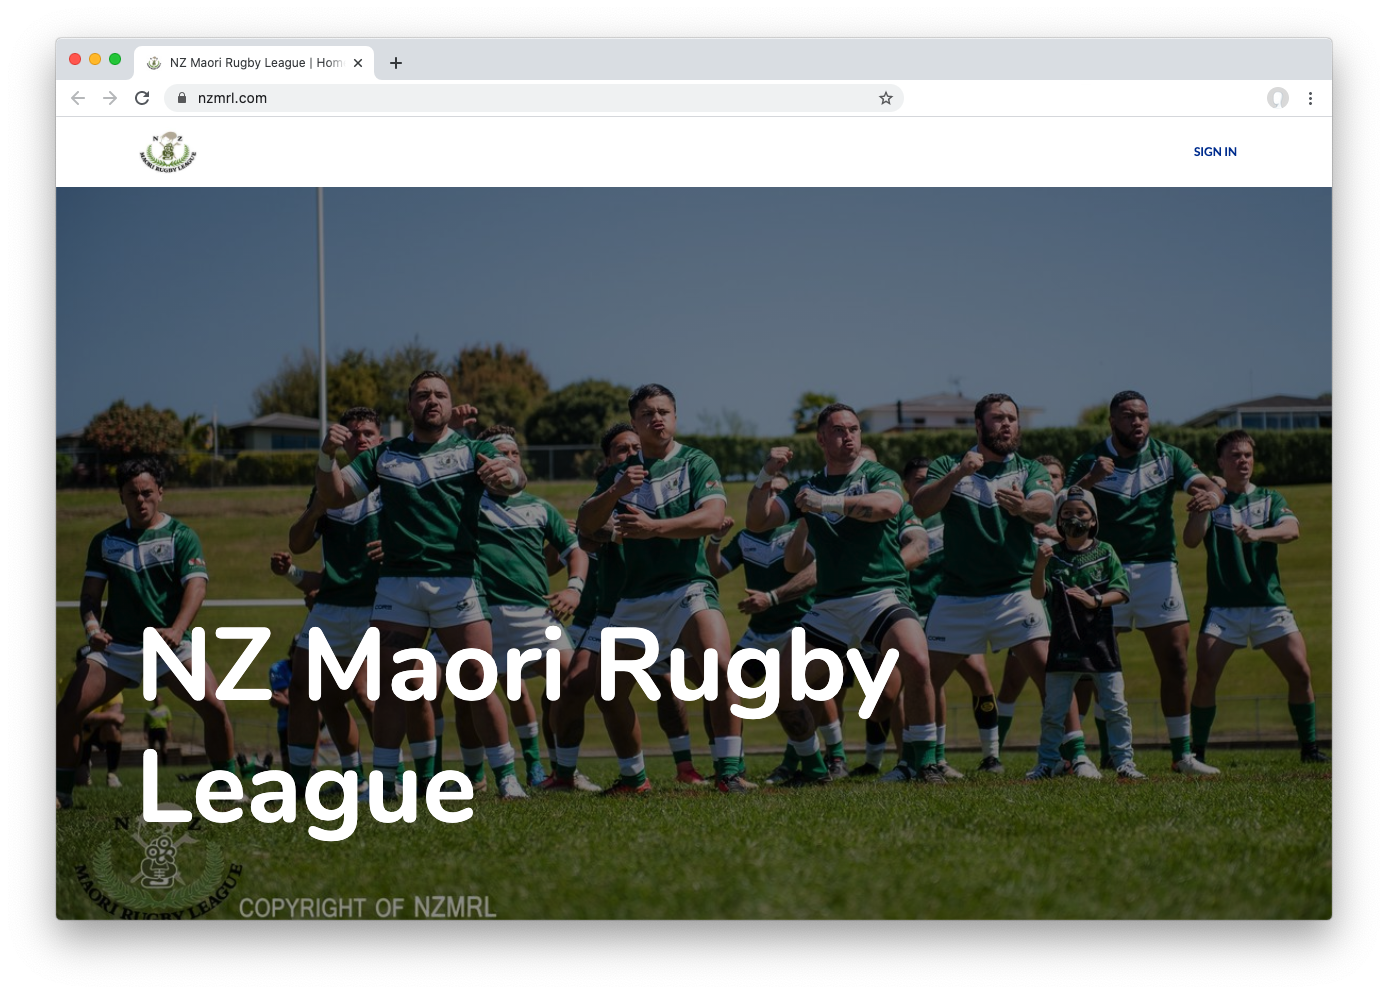 rugby league website hosted on leaguelobster